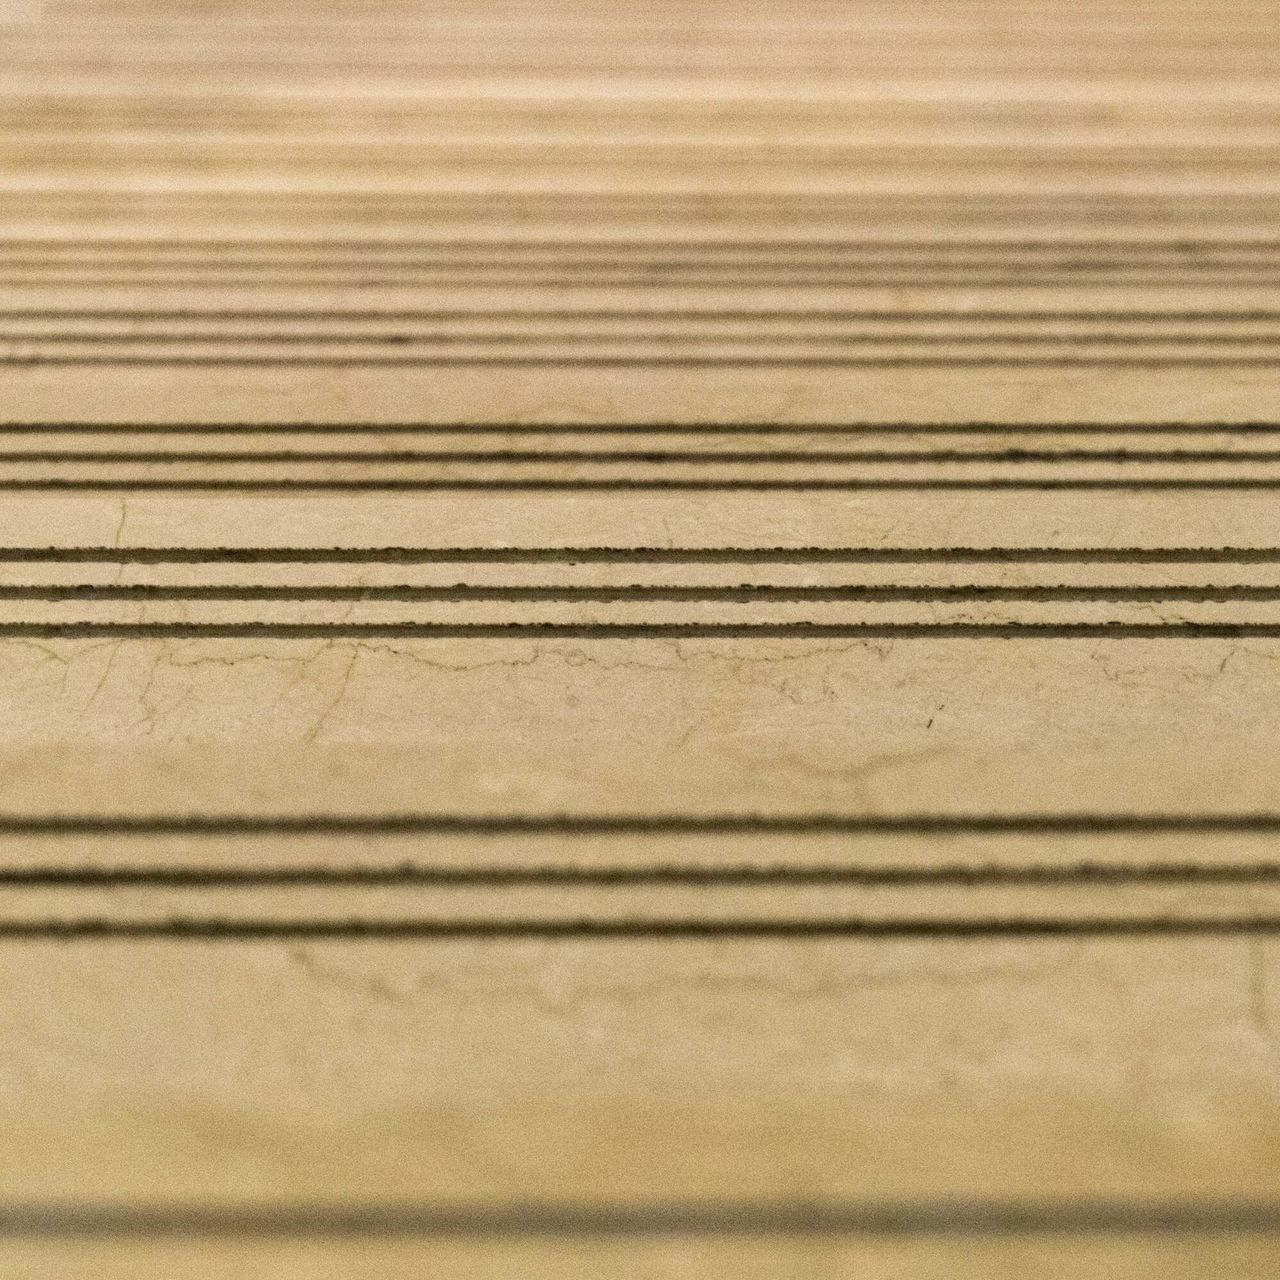 backgrounds, pattern, textured, wood - material, full frame, close-up, striped, abstract, rough, yellow, no people, hardwood, paint, wood grain, indoors, line, nature, day